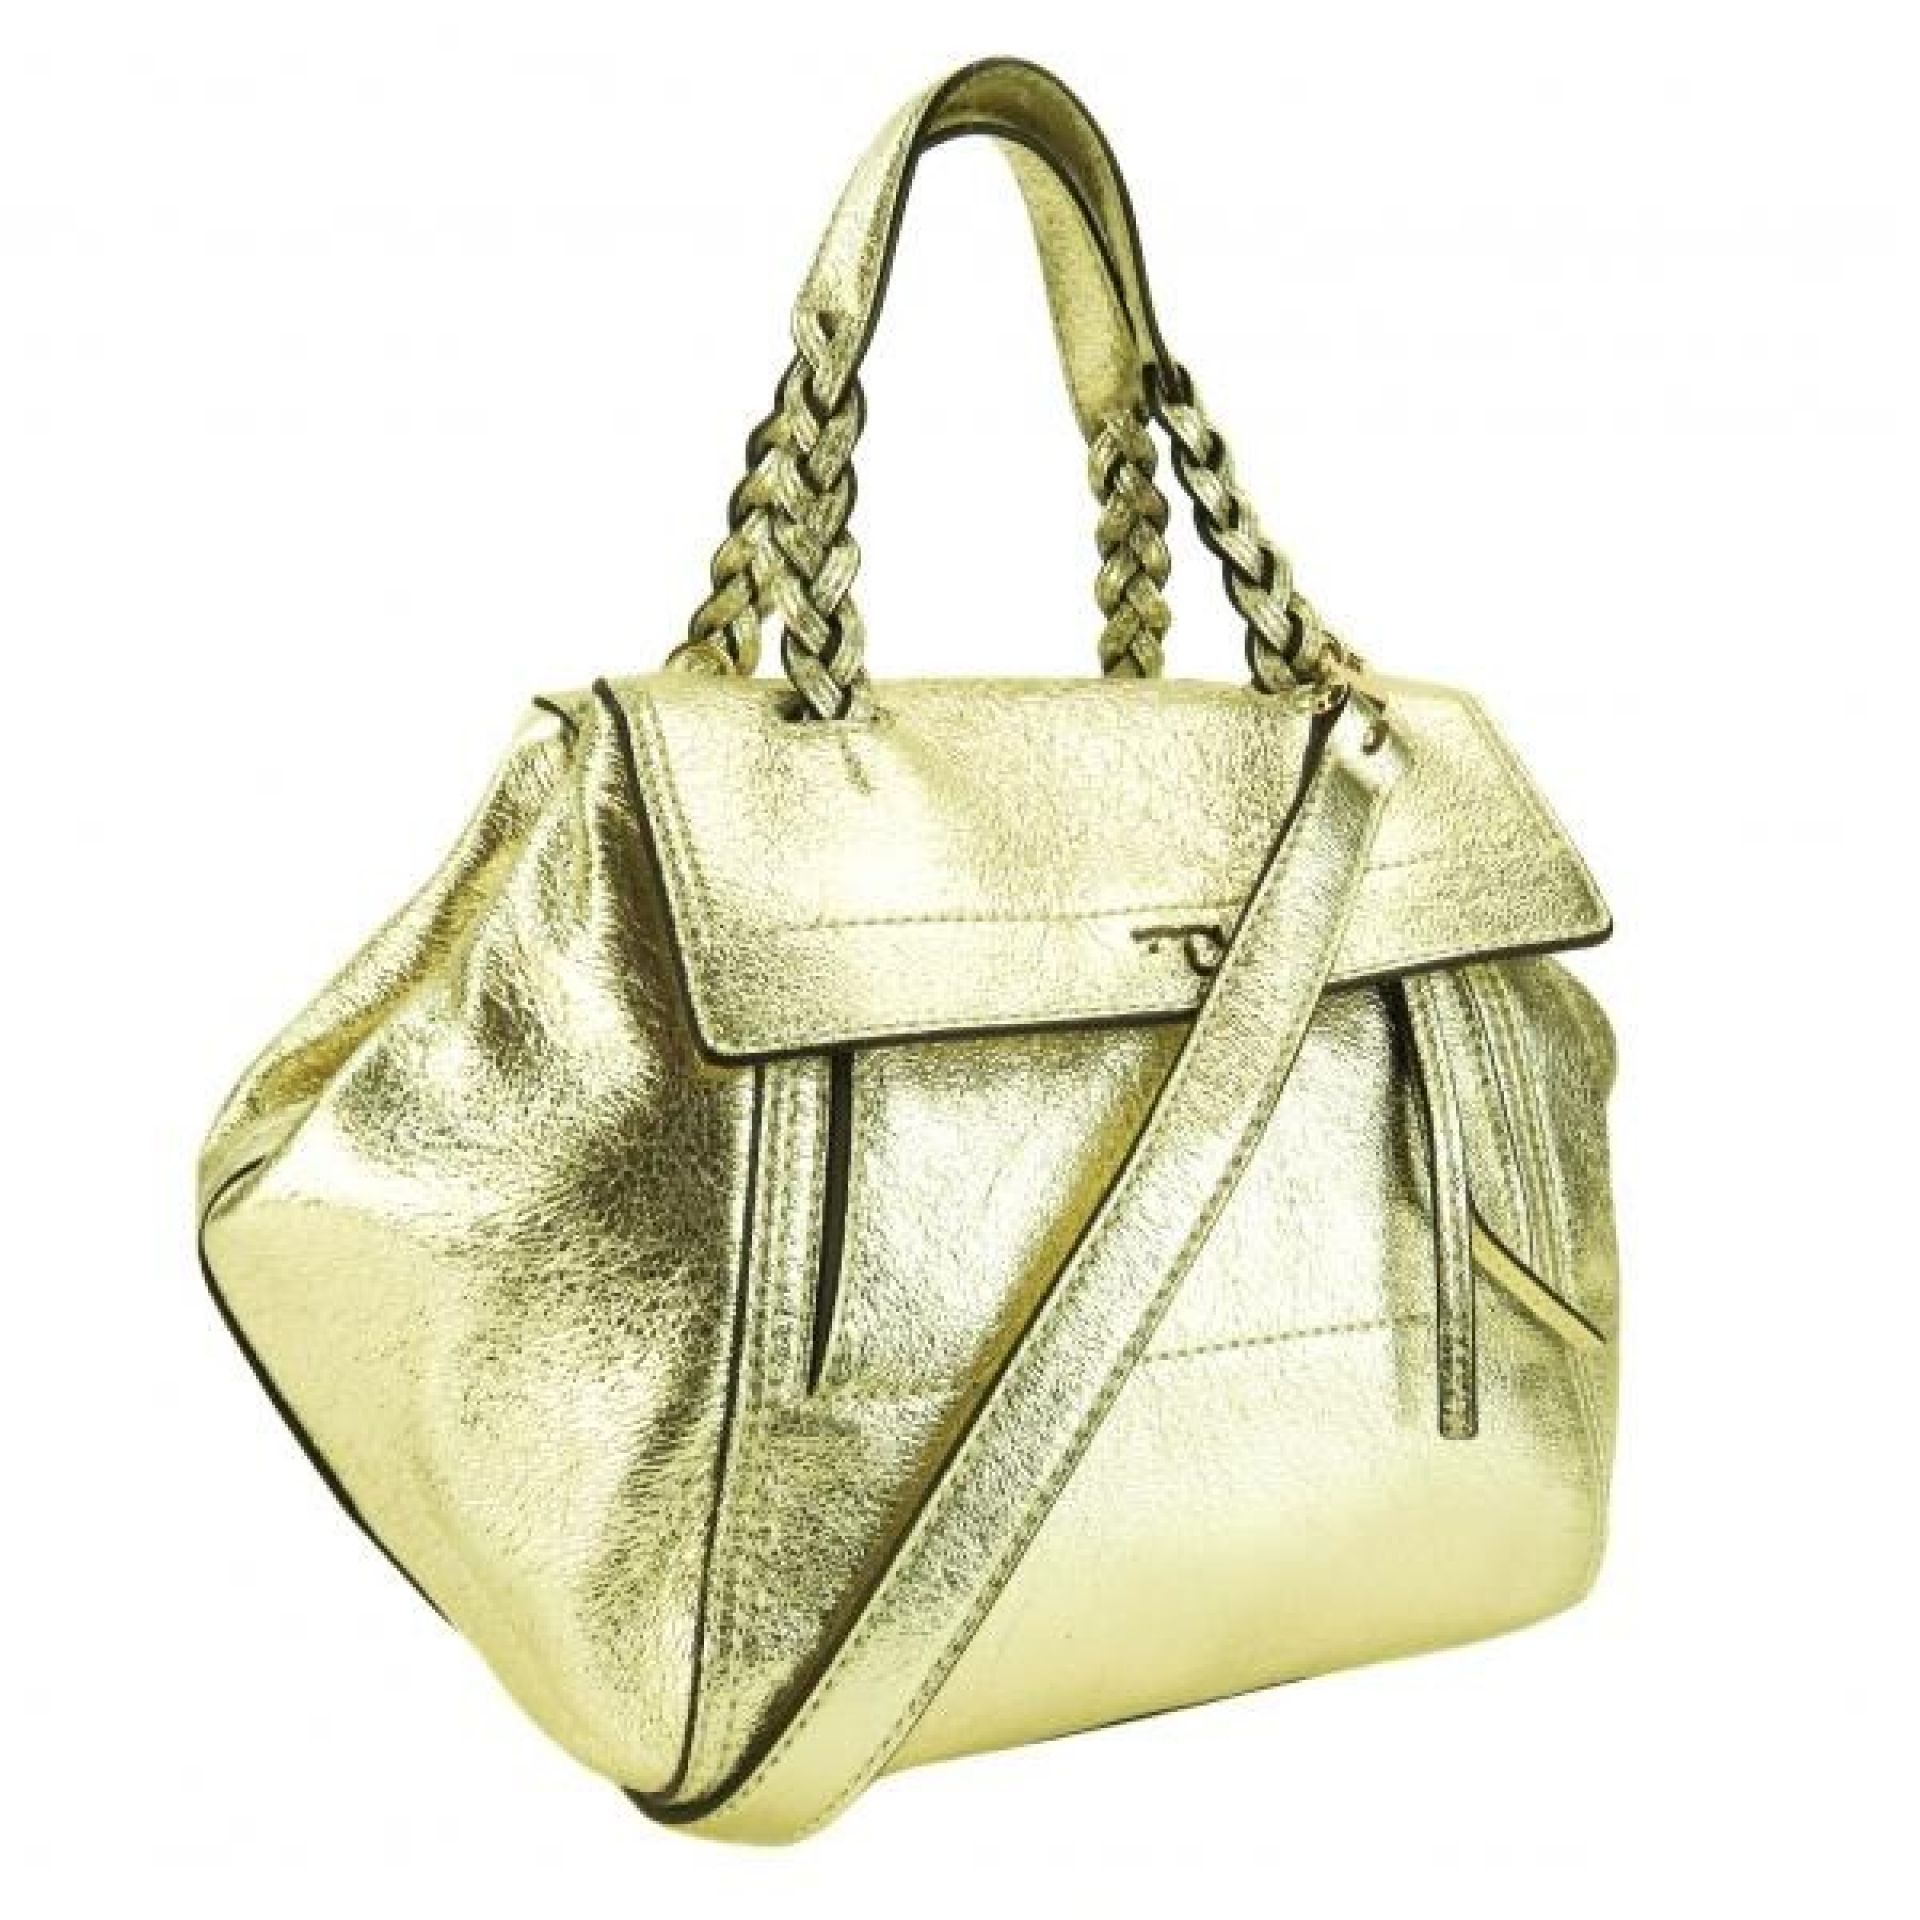 Tory Burch Gold Metallic Leather Half Moon Satchel Bag